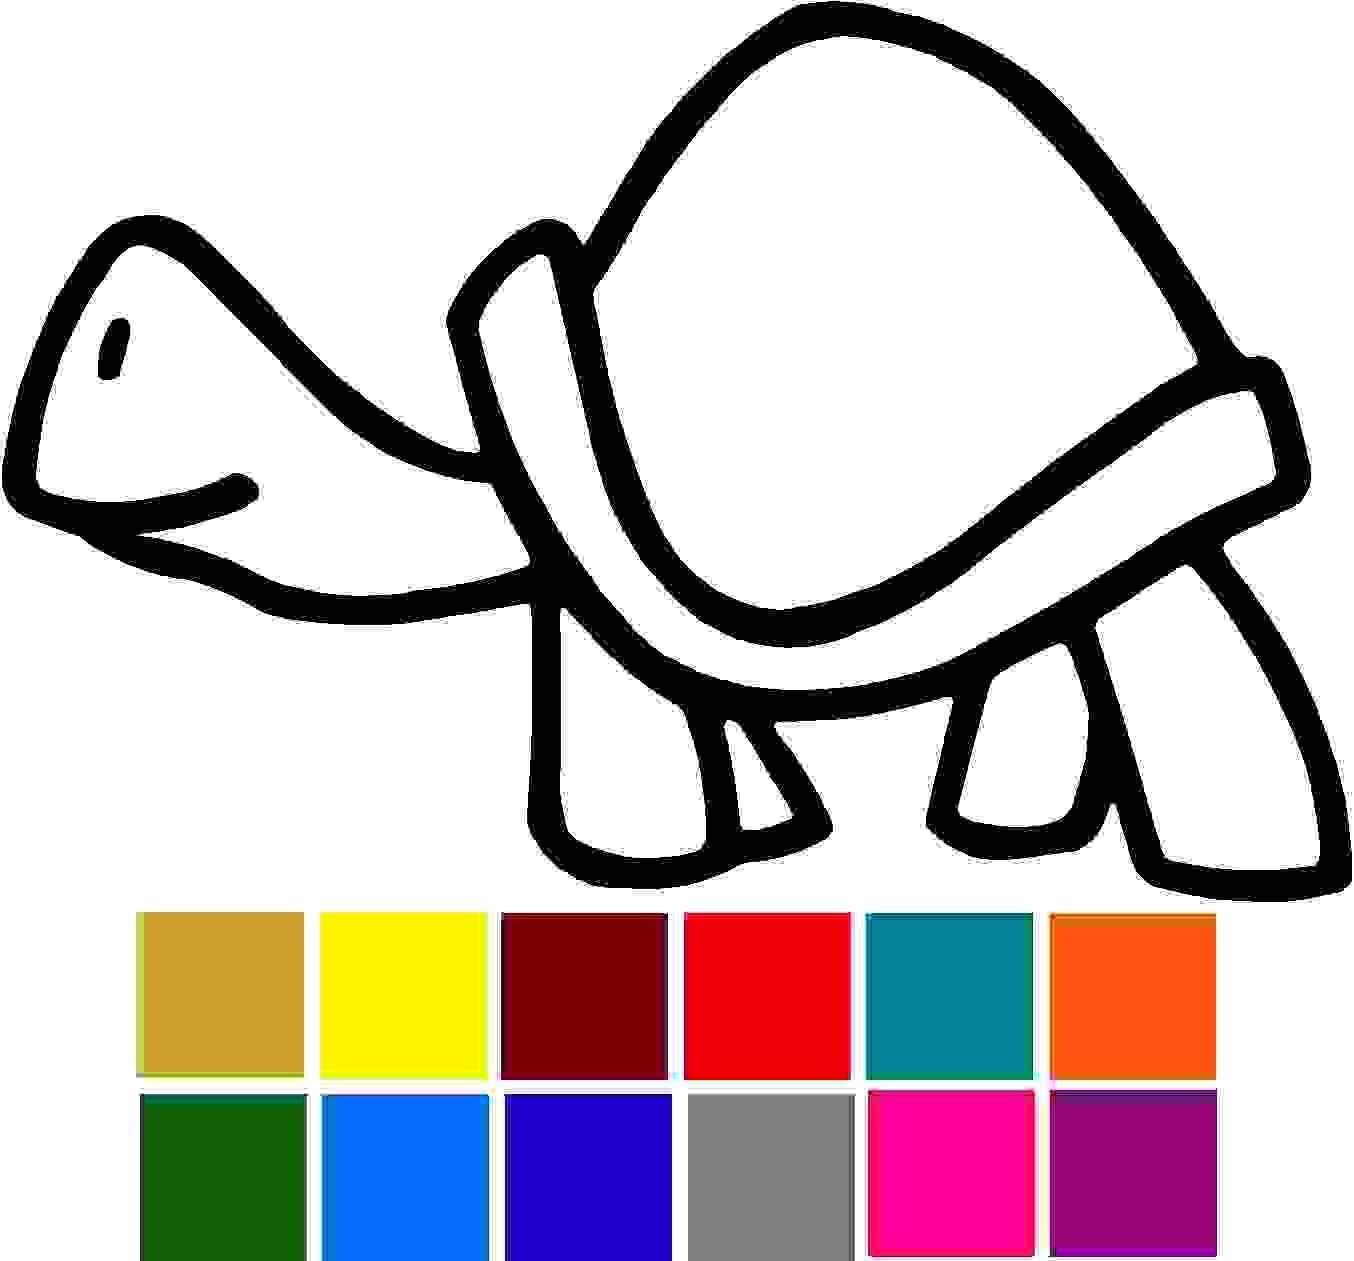 Animal Turtle Slow Car Window Tumblers Wall Decal Sticker Vinyl Laptops Cellphones Phones Tablets Ipads Helmets Motorcycles Computer Towers V and T Gifts